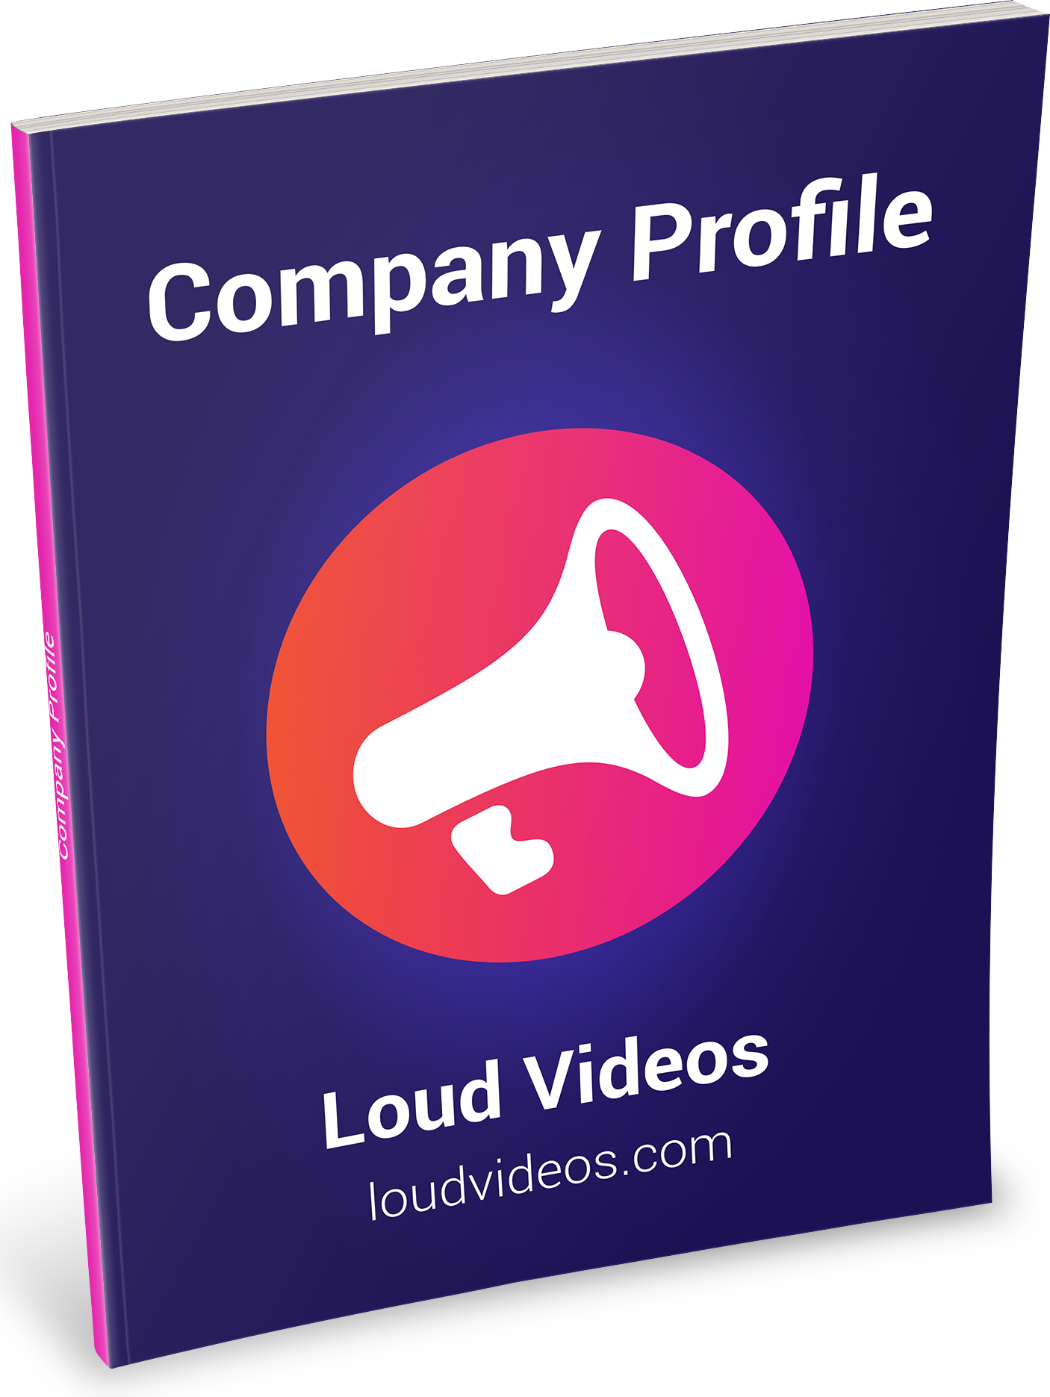 loud videos company profile